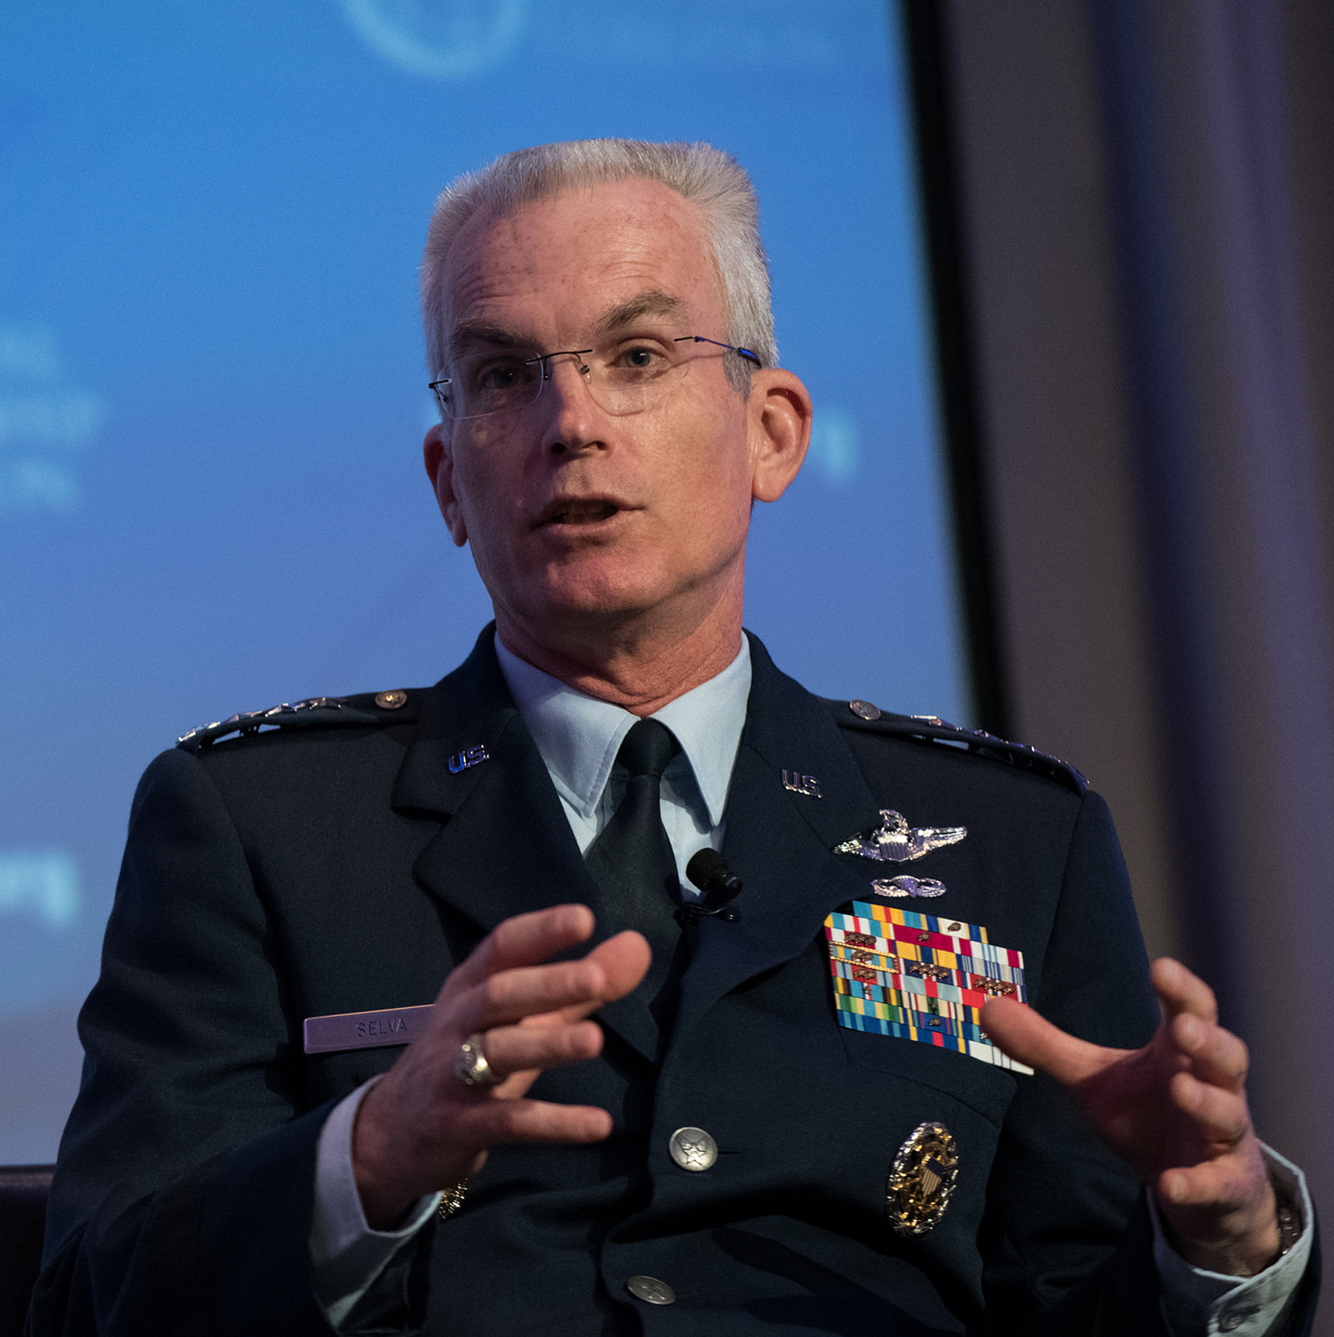 DoD, USAID leaders speak on humanitarian efforts